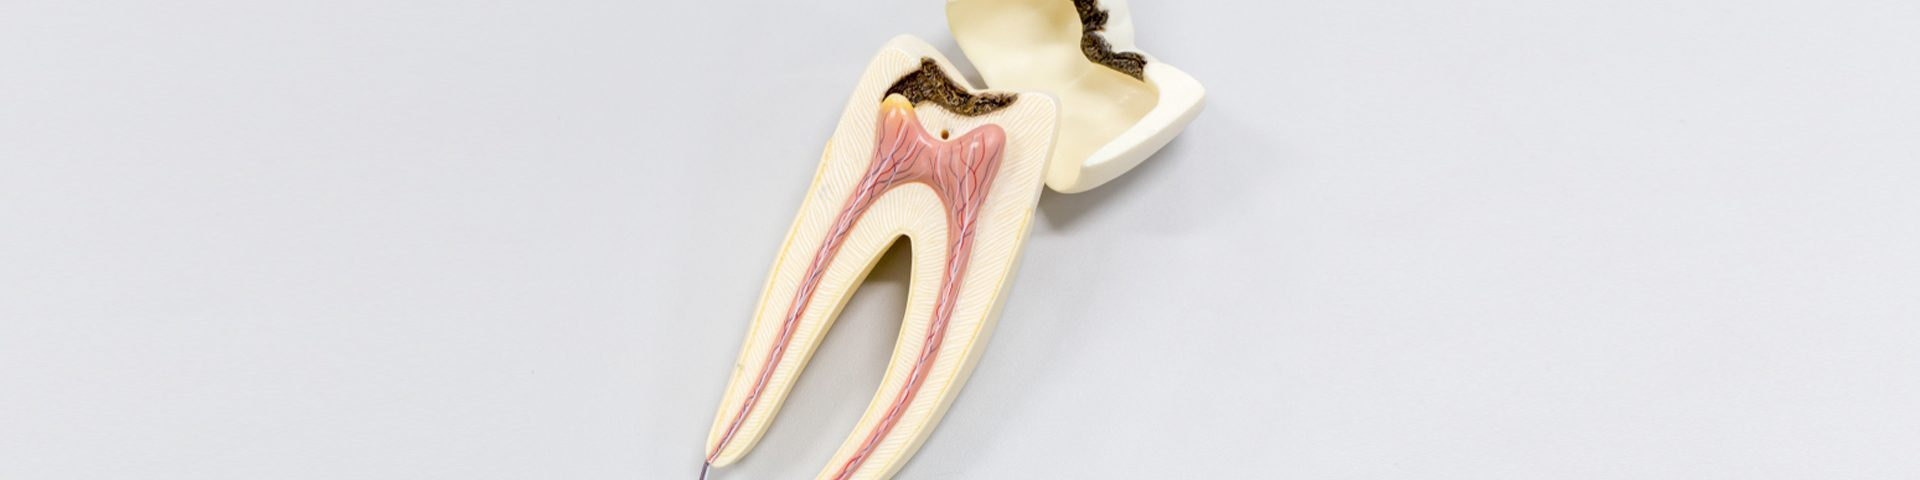 Root Canal: Dangerous or Just Misunderstood?